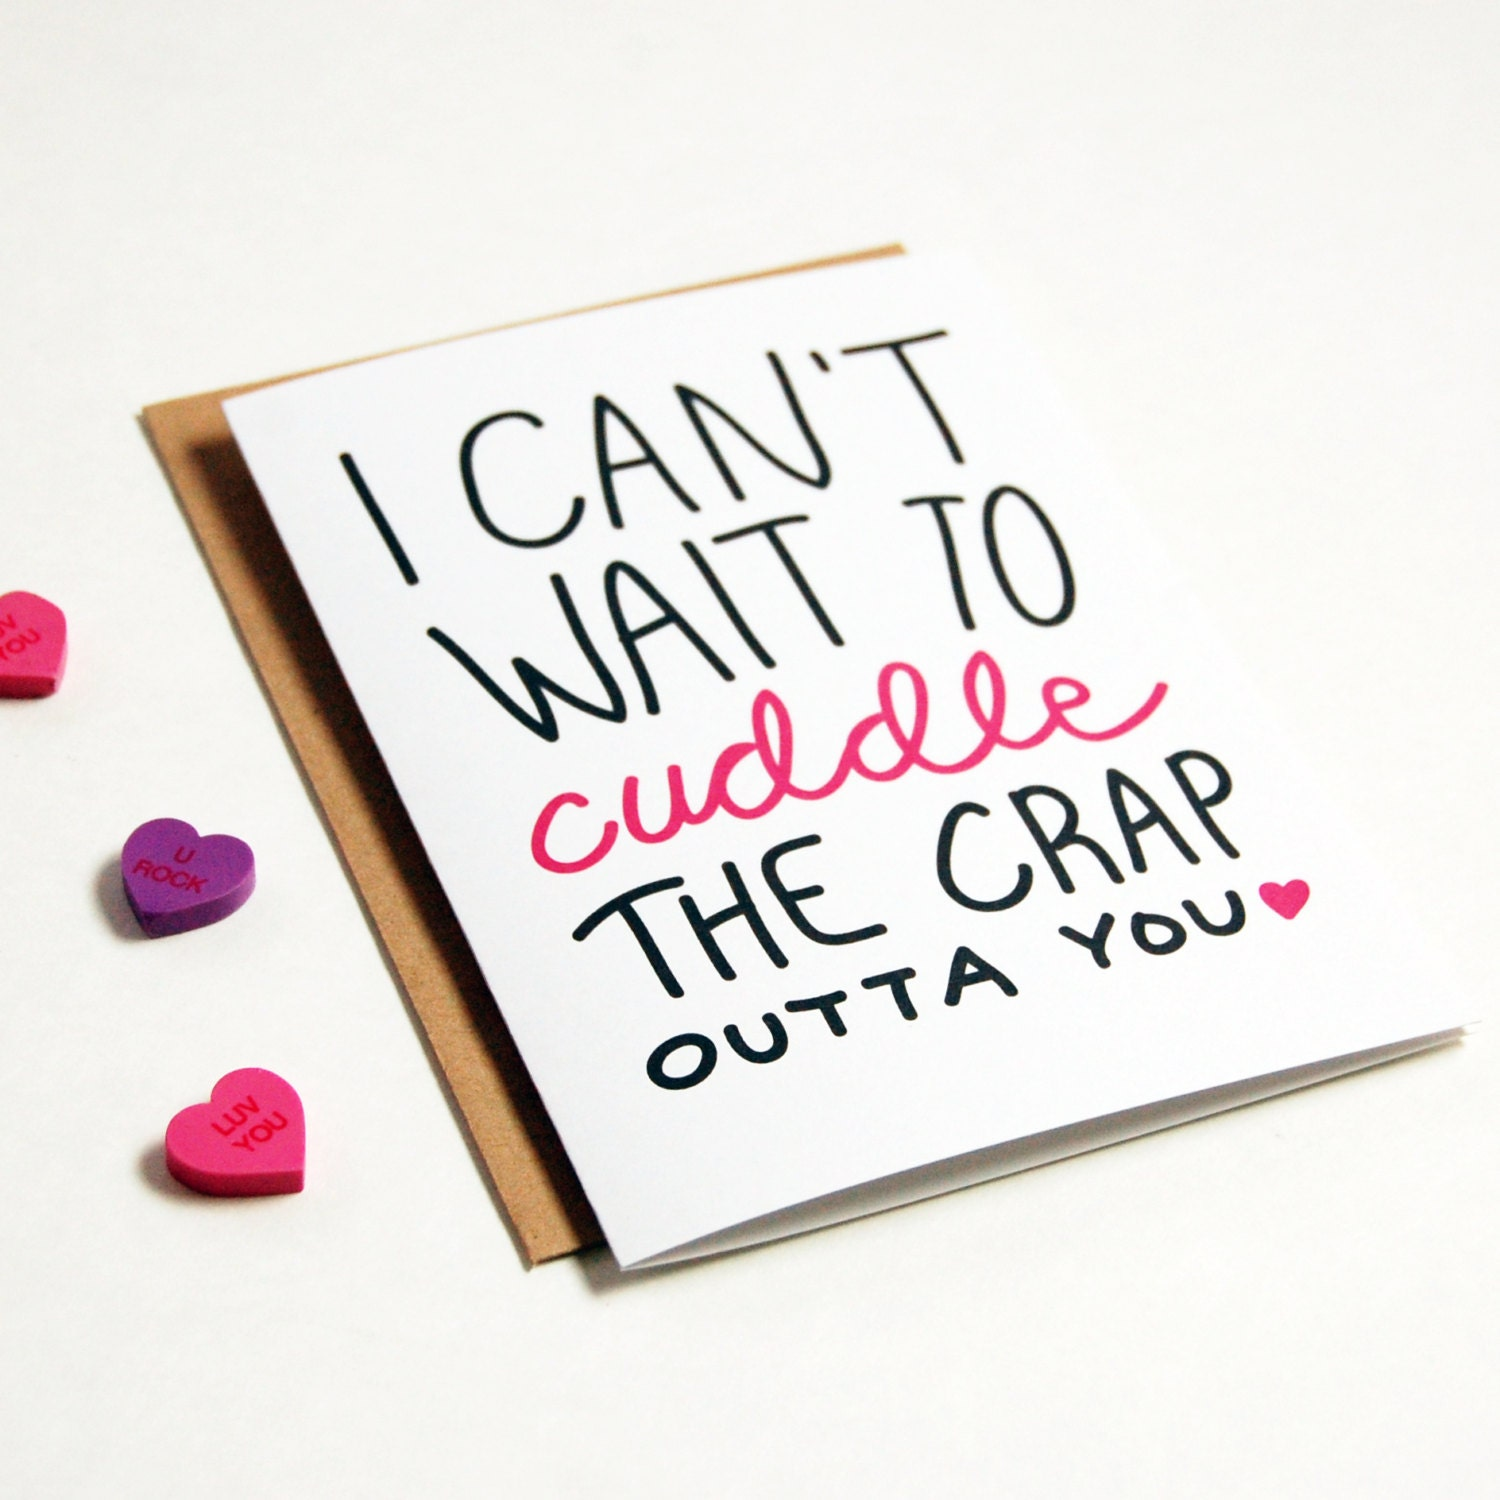 Can I Cuddle With You: I Can't Wait To Cuddle You Greeting Card Boyfriend By